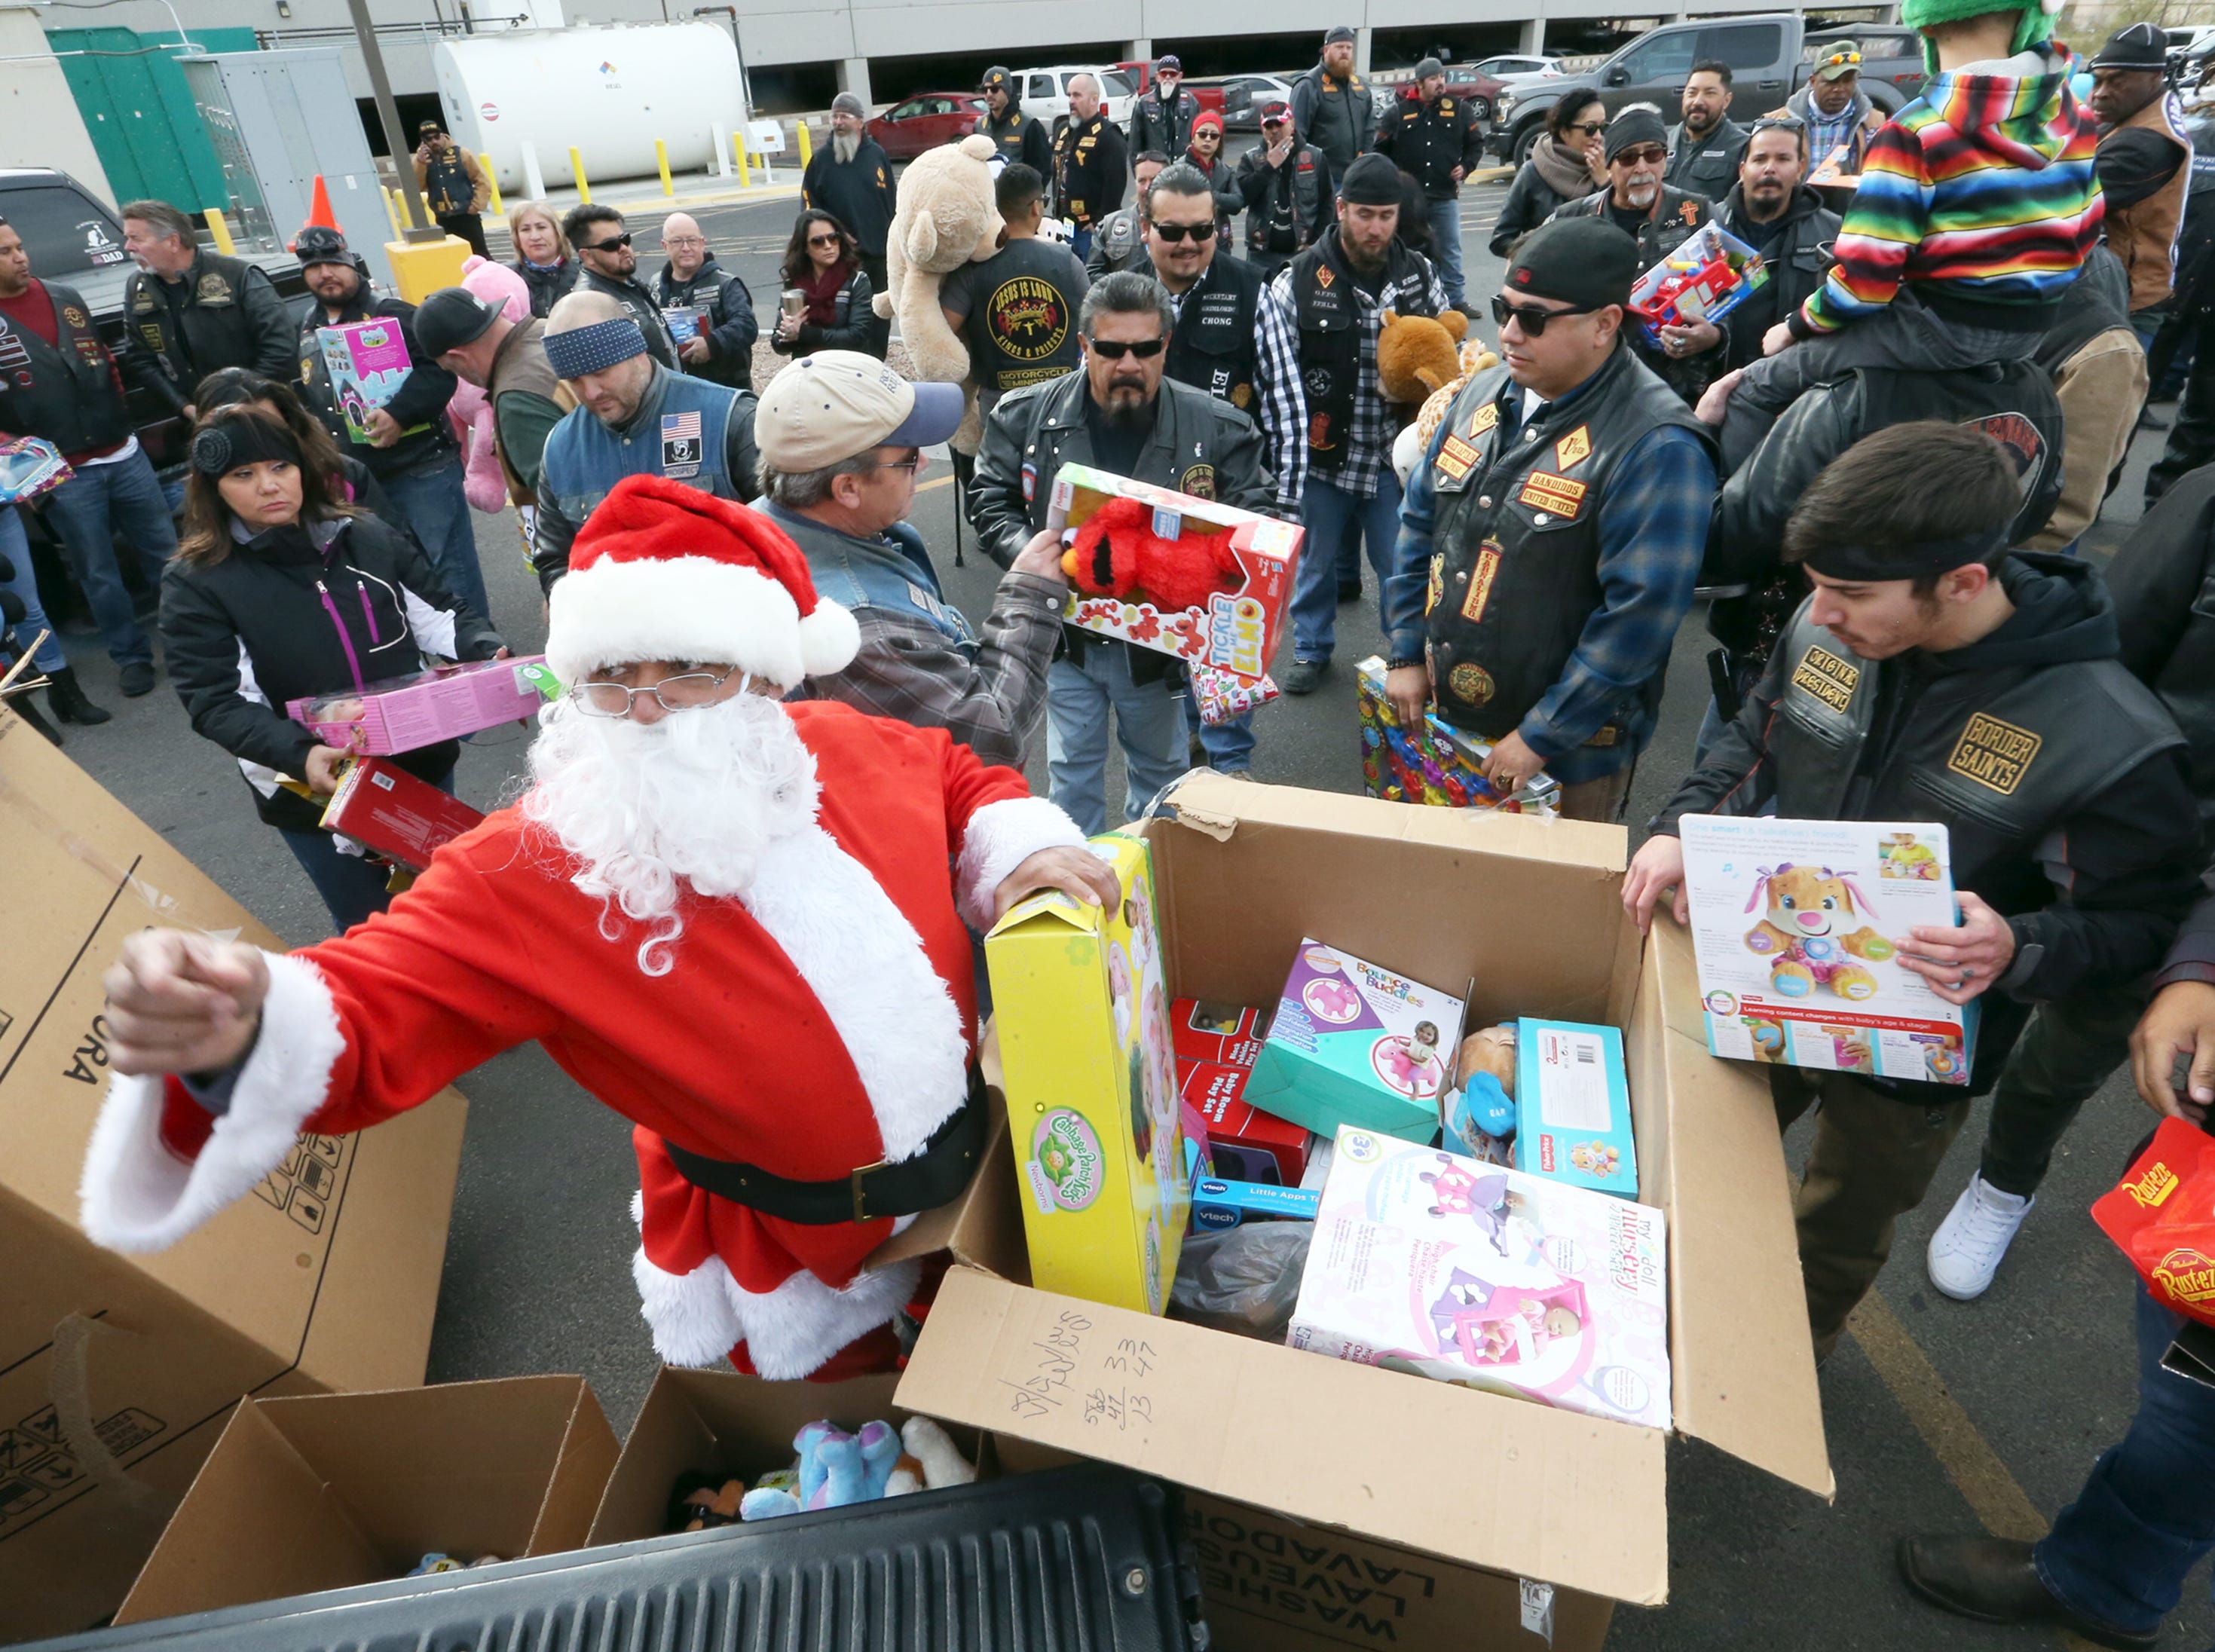 Santa Claus helps distribute toys to members of the El Paso Motorcycle Coalition, so they can hand them out to children during the 36th annual Toy Run/Parade toy delivery at Providence Children's Hospital on Christmas Day.